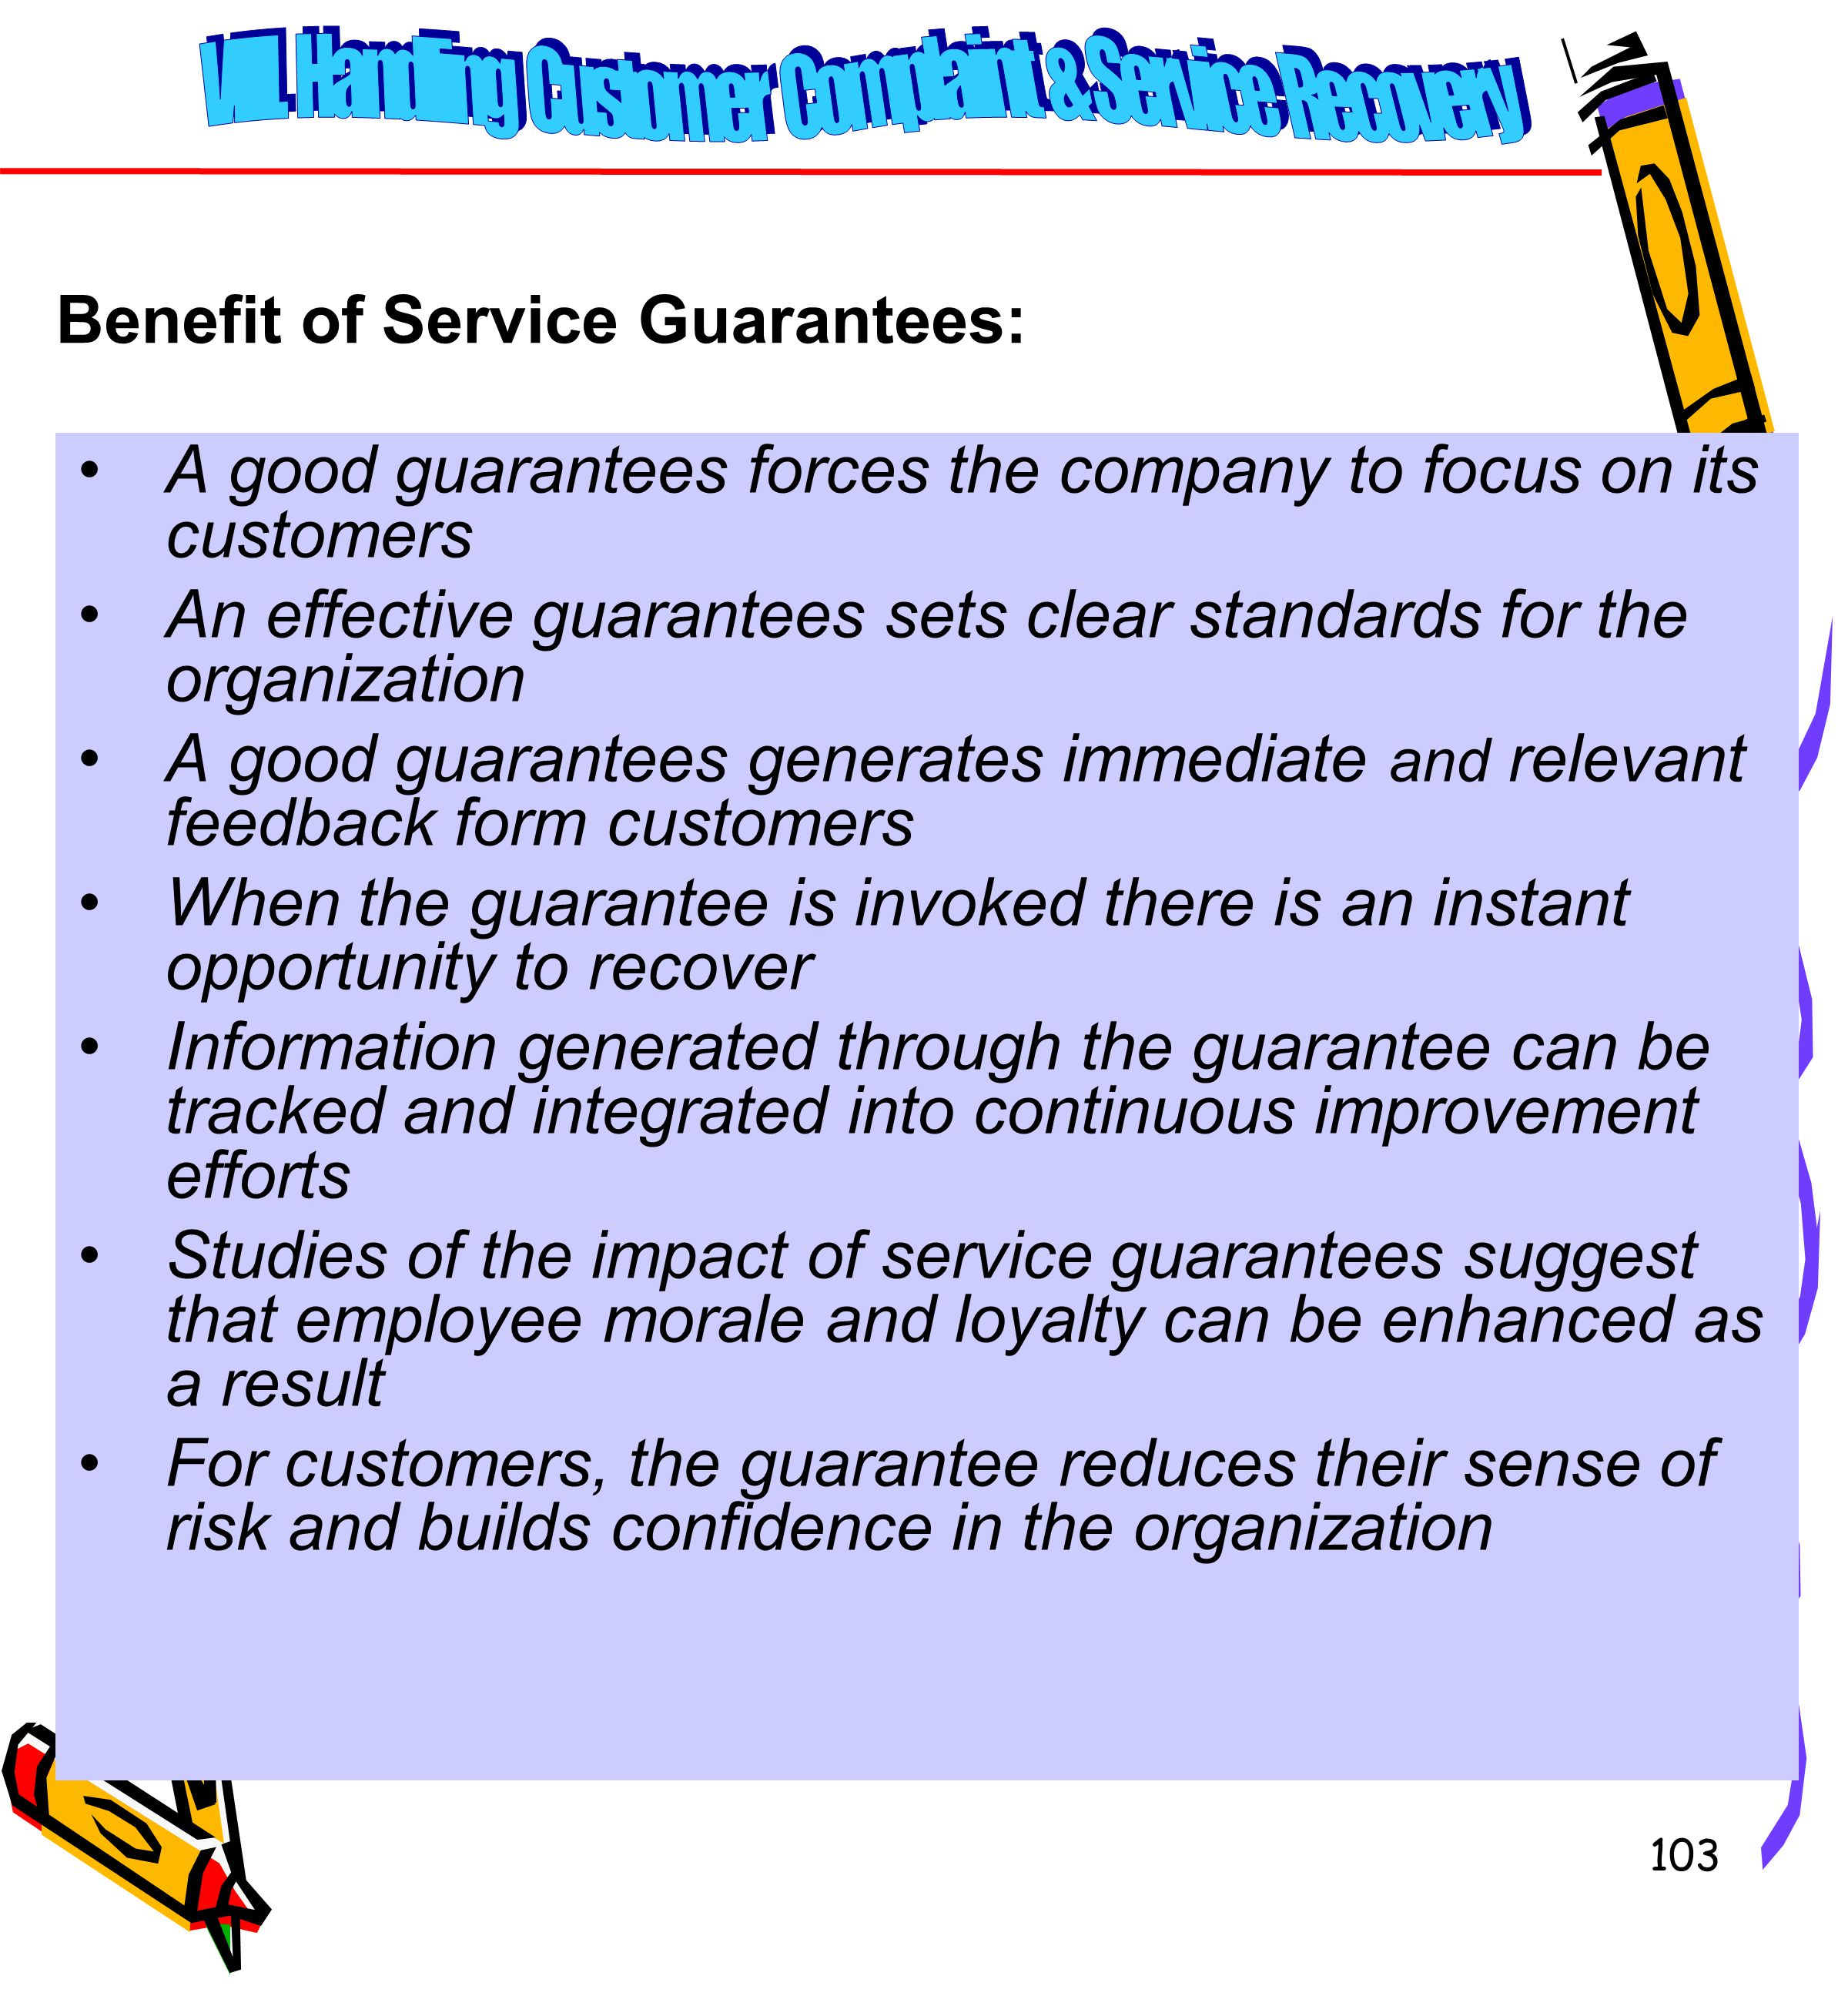 103 A good guarantees forces the company to focus on its customers An effective guarantees sets clear standards for the organization A good guarantees generates immediate and relevant feedback form customers When the guarantee is invoked there is an instant opportunity to recover Information generated through the guarantee can be tracked and integrated into continuous improvement efforts Studies of the impact of service guarantees suggest that employee morale and loyalty can be enhanced as a result For customers, the guarantee reduces their sense of risk and builds confidence in the organization Benefit of Service Guarantees: